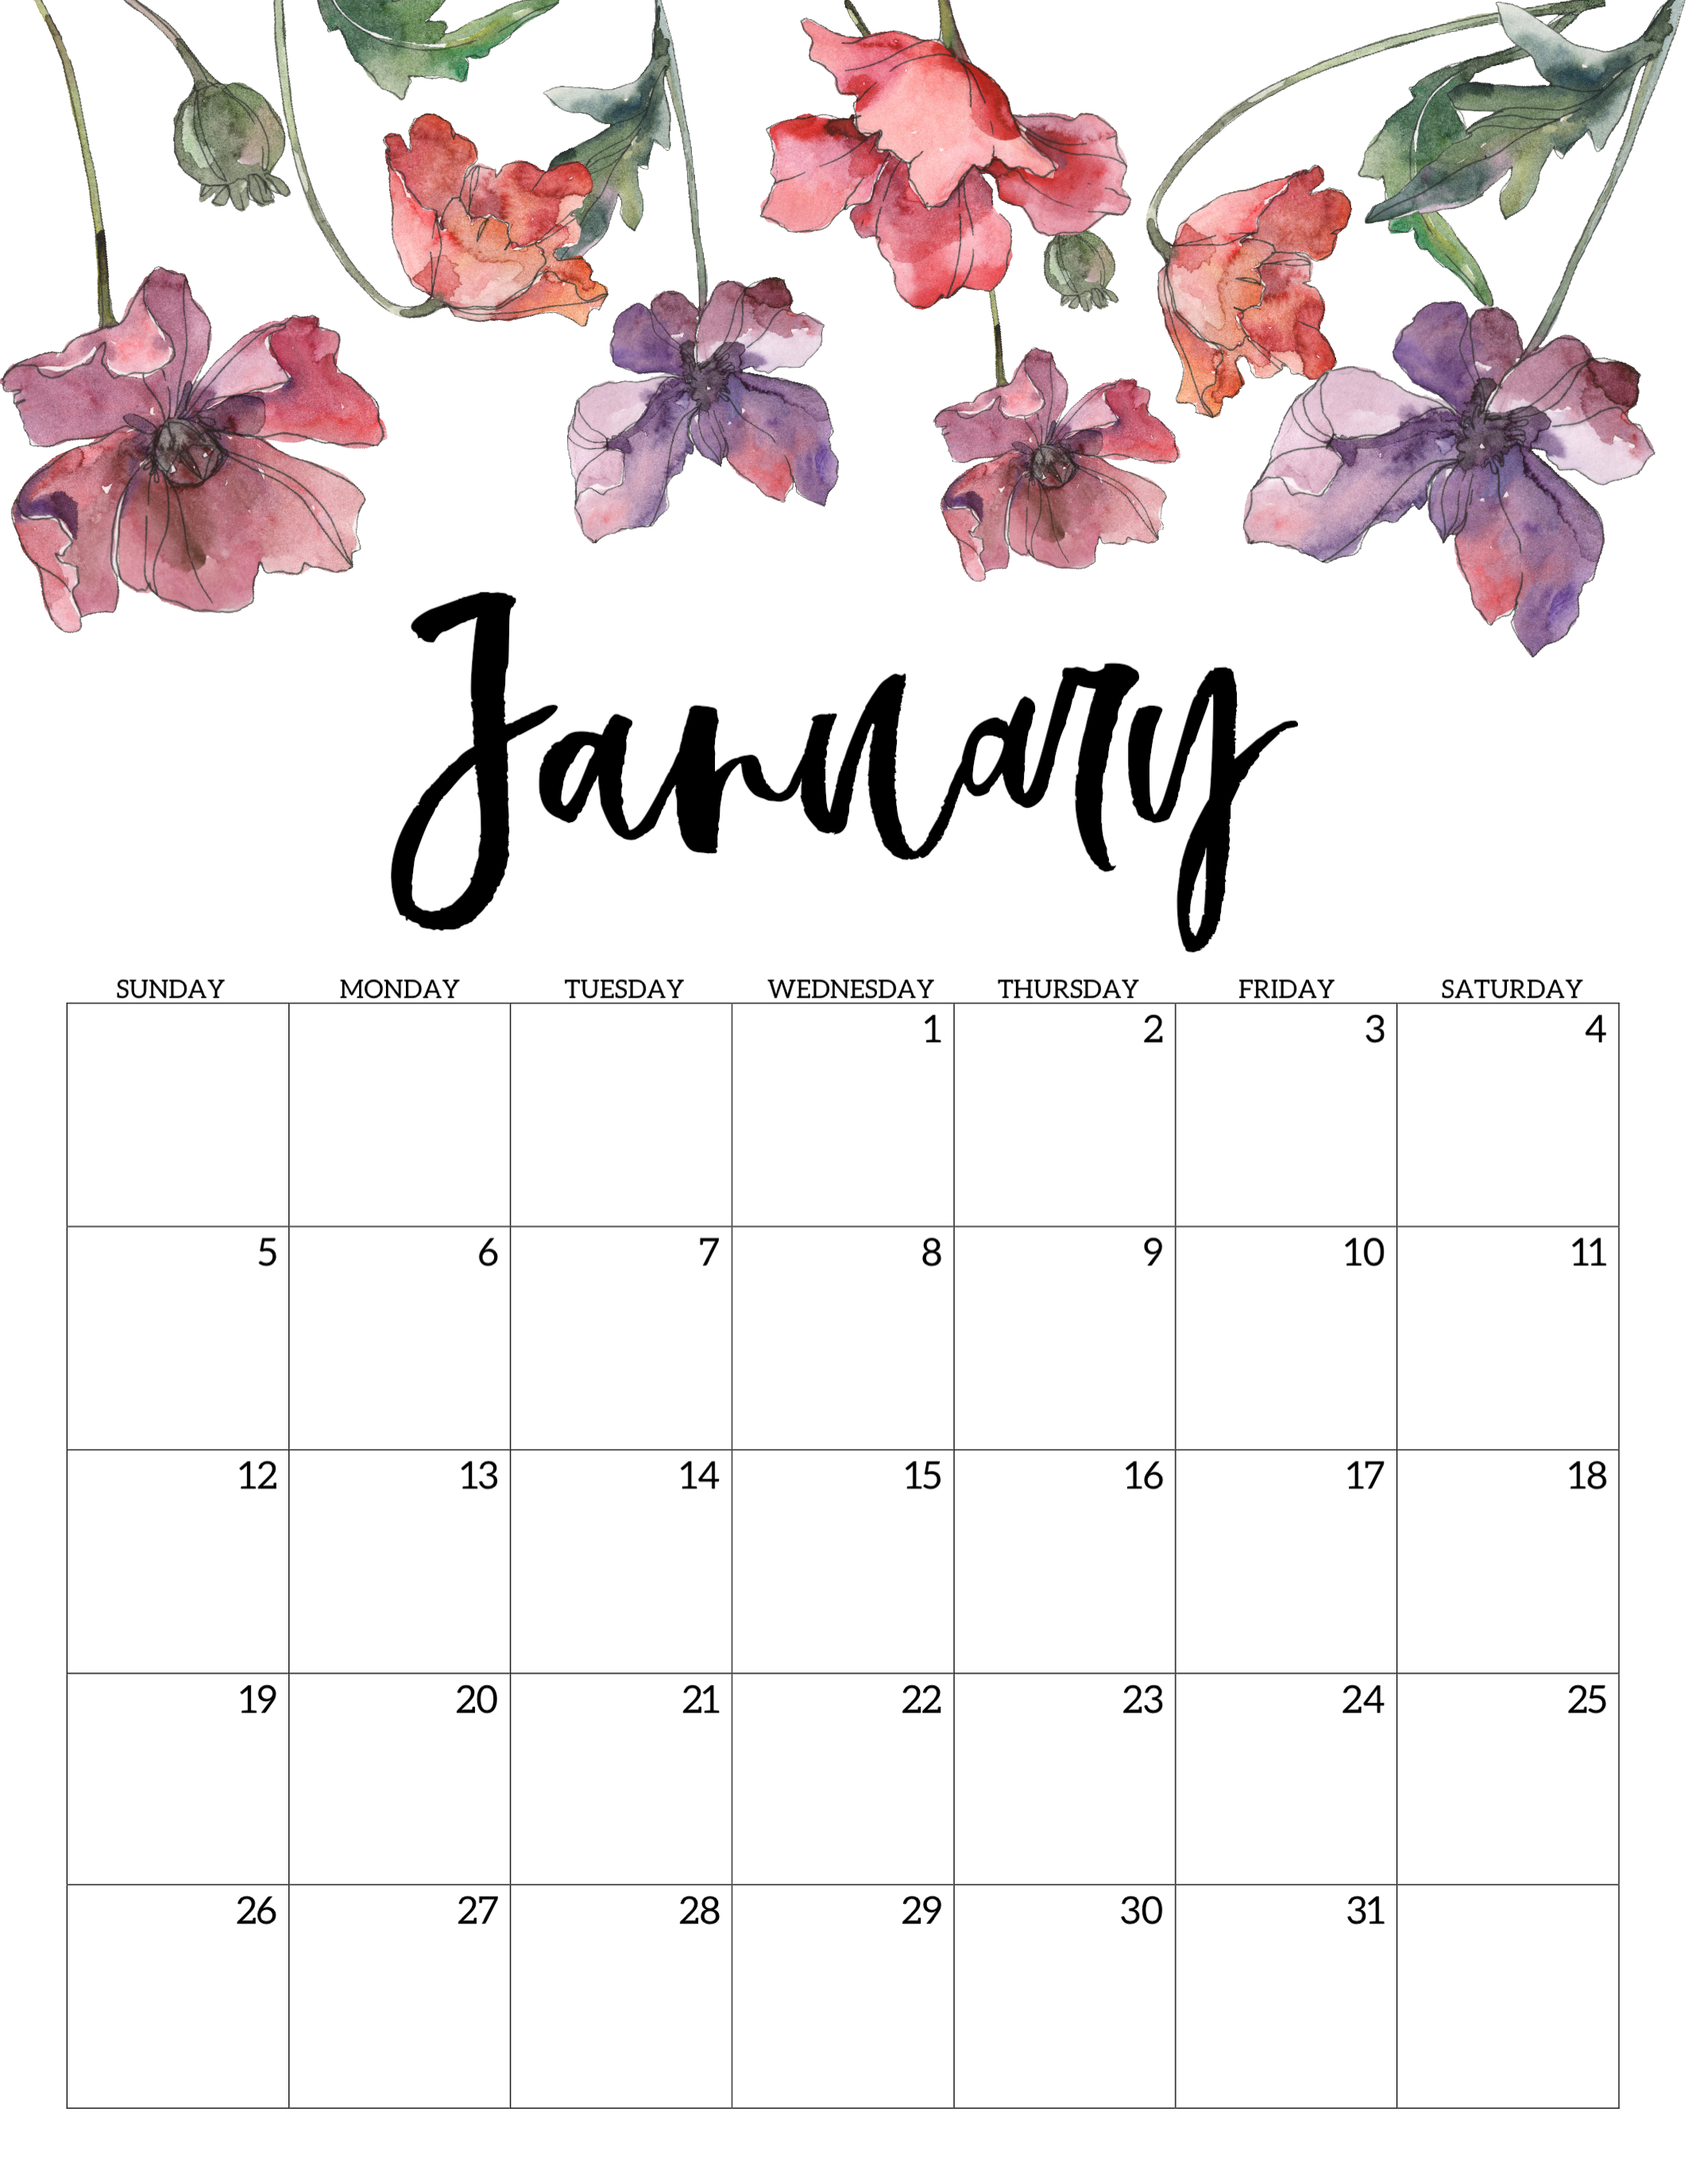 Free January 2020 Calendar 2020 Free Printable Calendar   Floral   Paper Trail Design